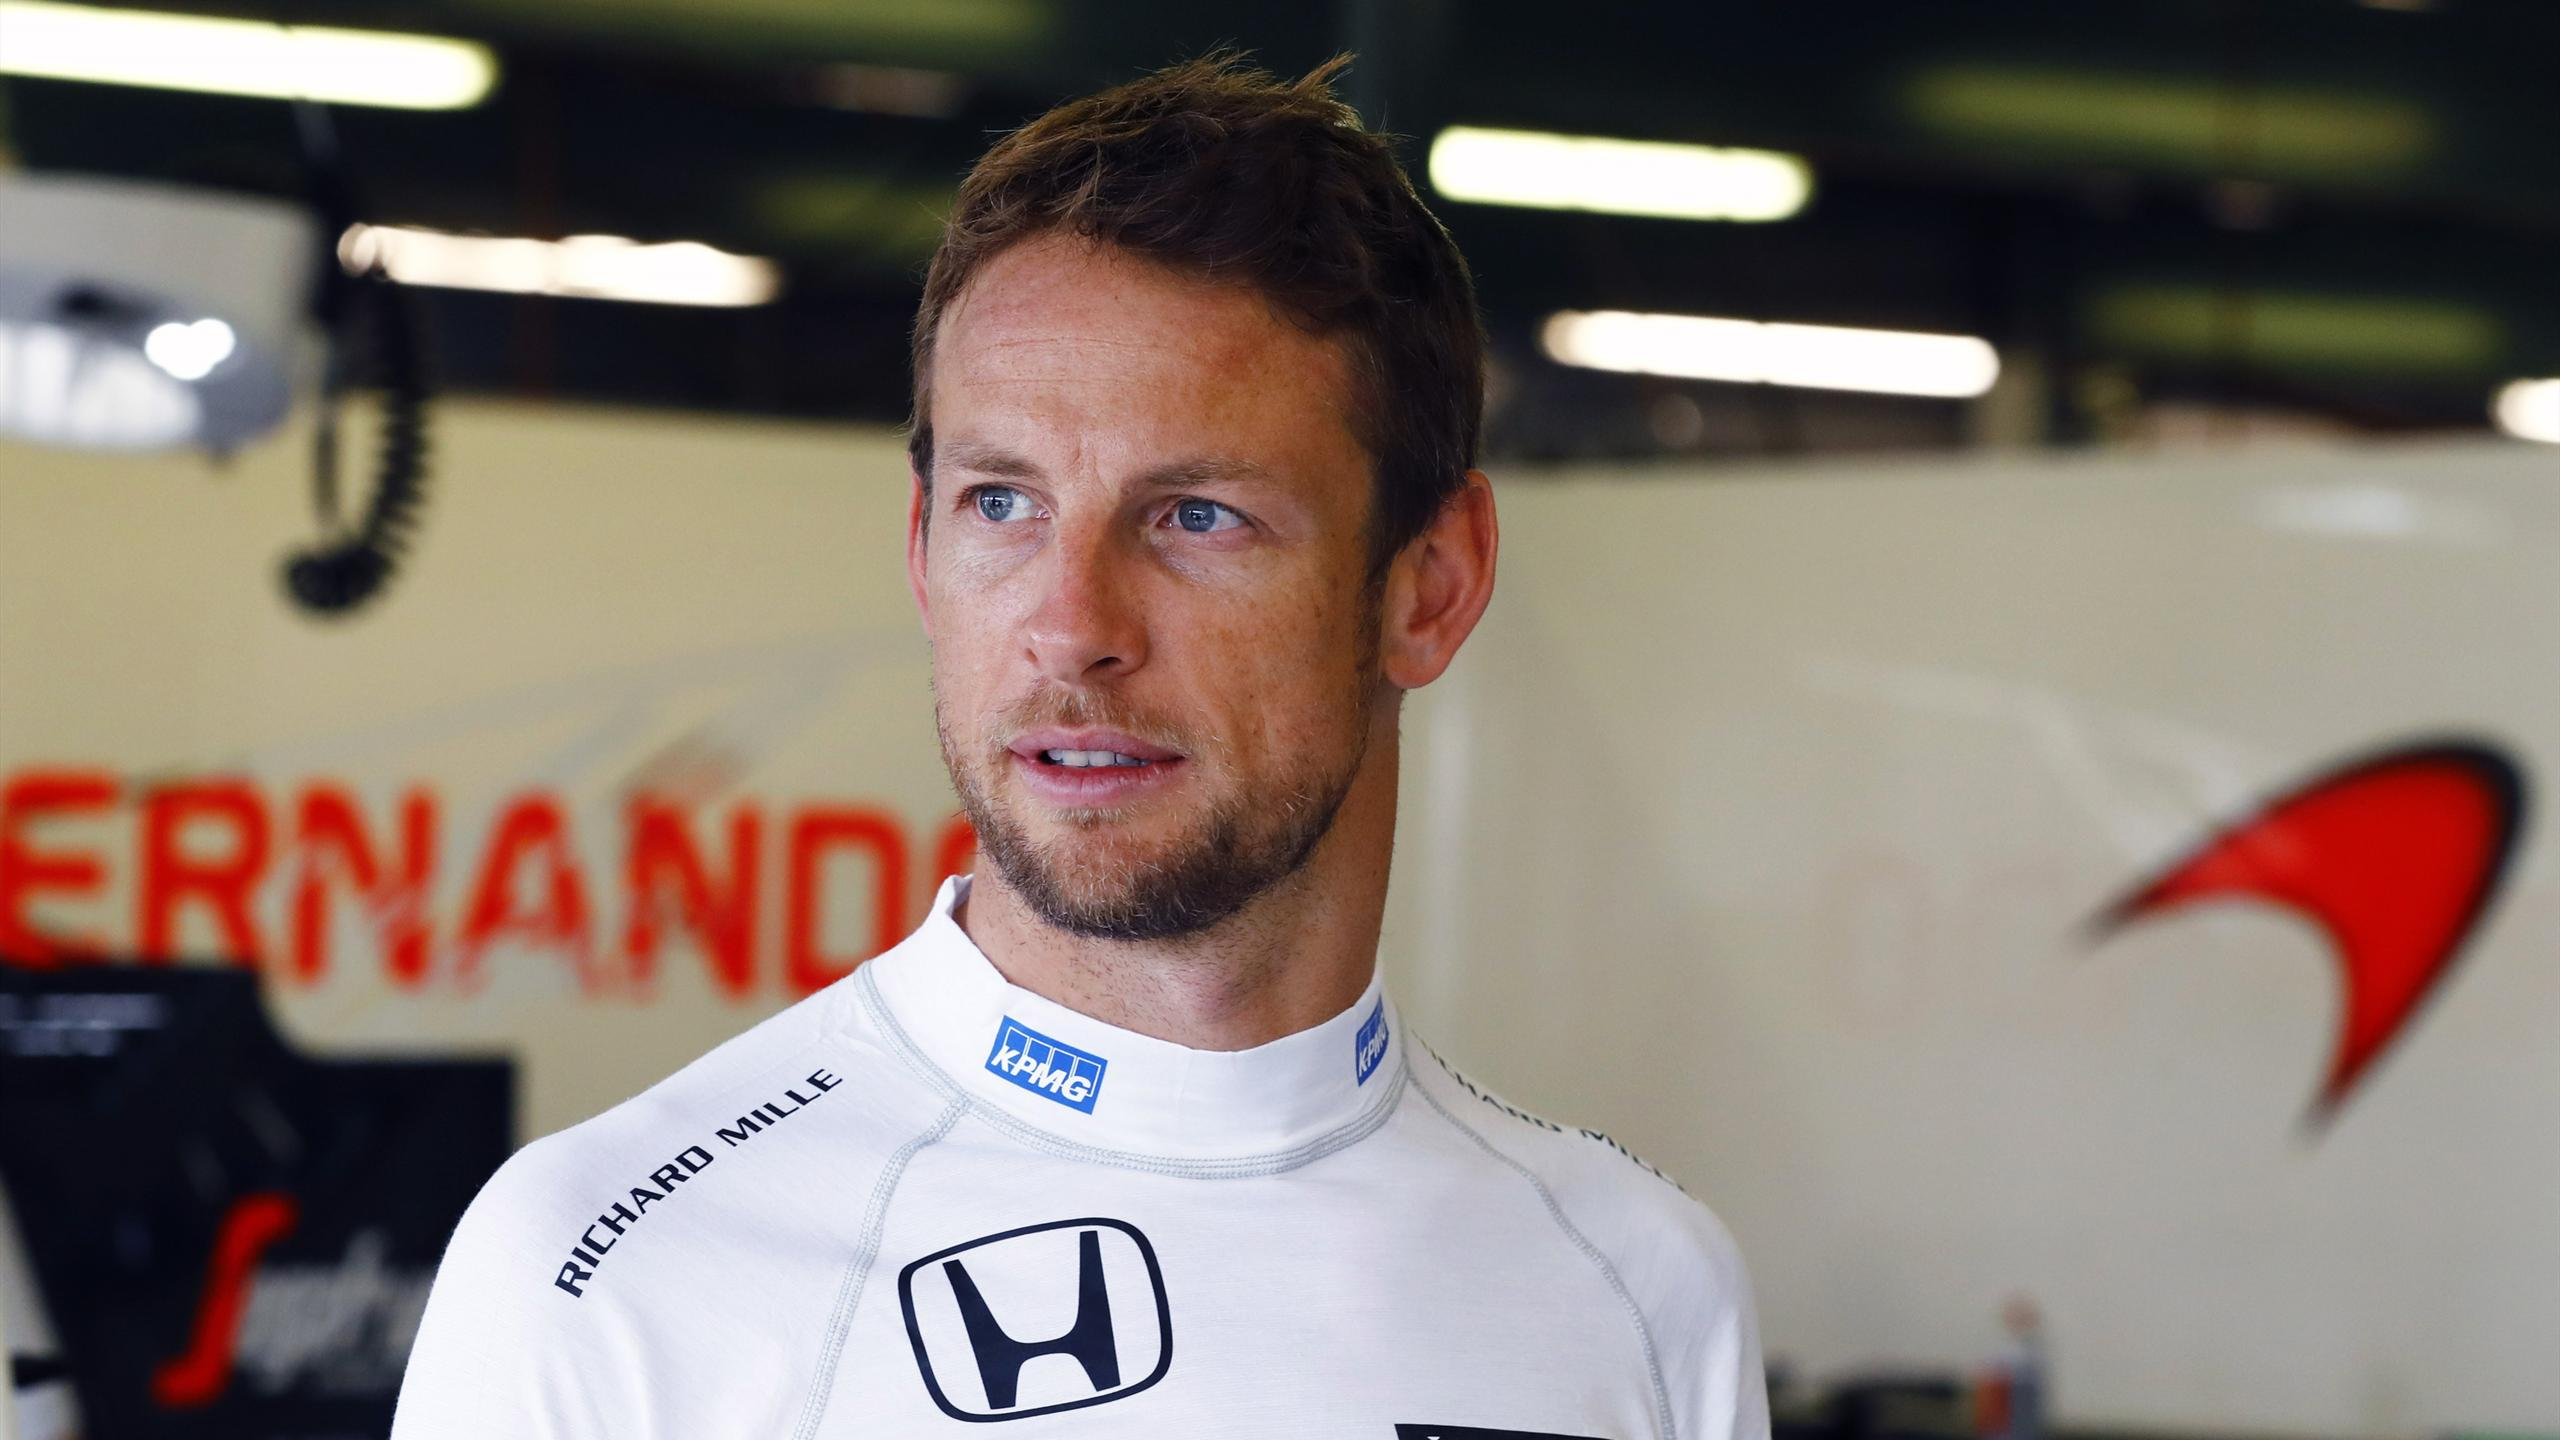 Jenson Button (McLaren) - GP of Australia 2016